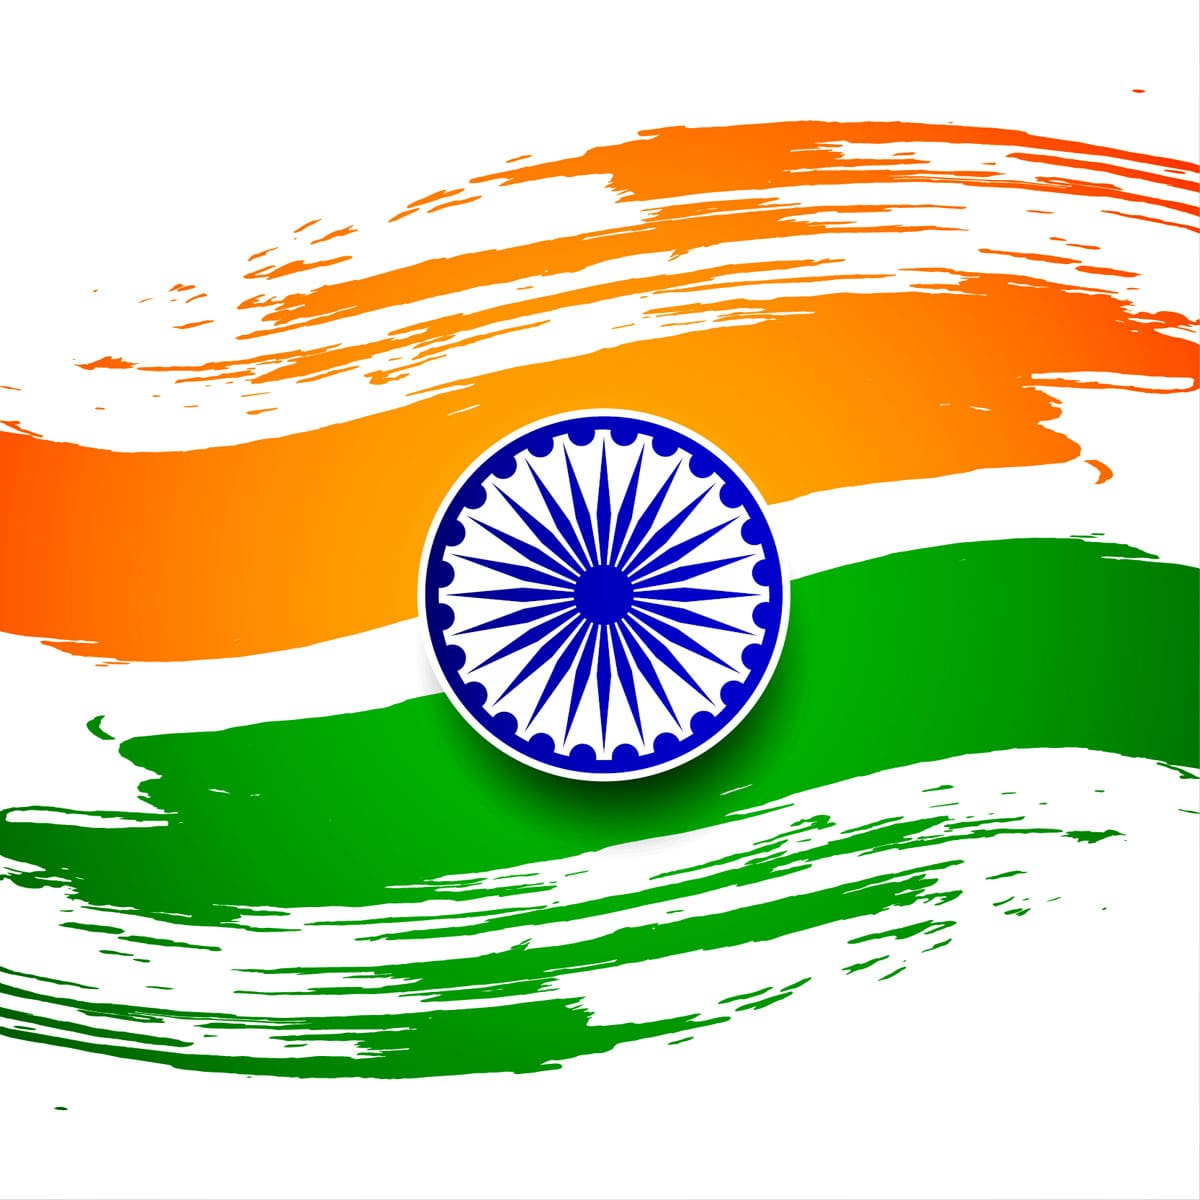 Indian Flag Images Wallpapers Download Indian%2BFlag%2BImages%2B1080p